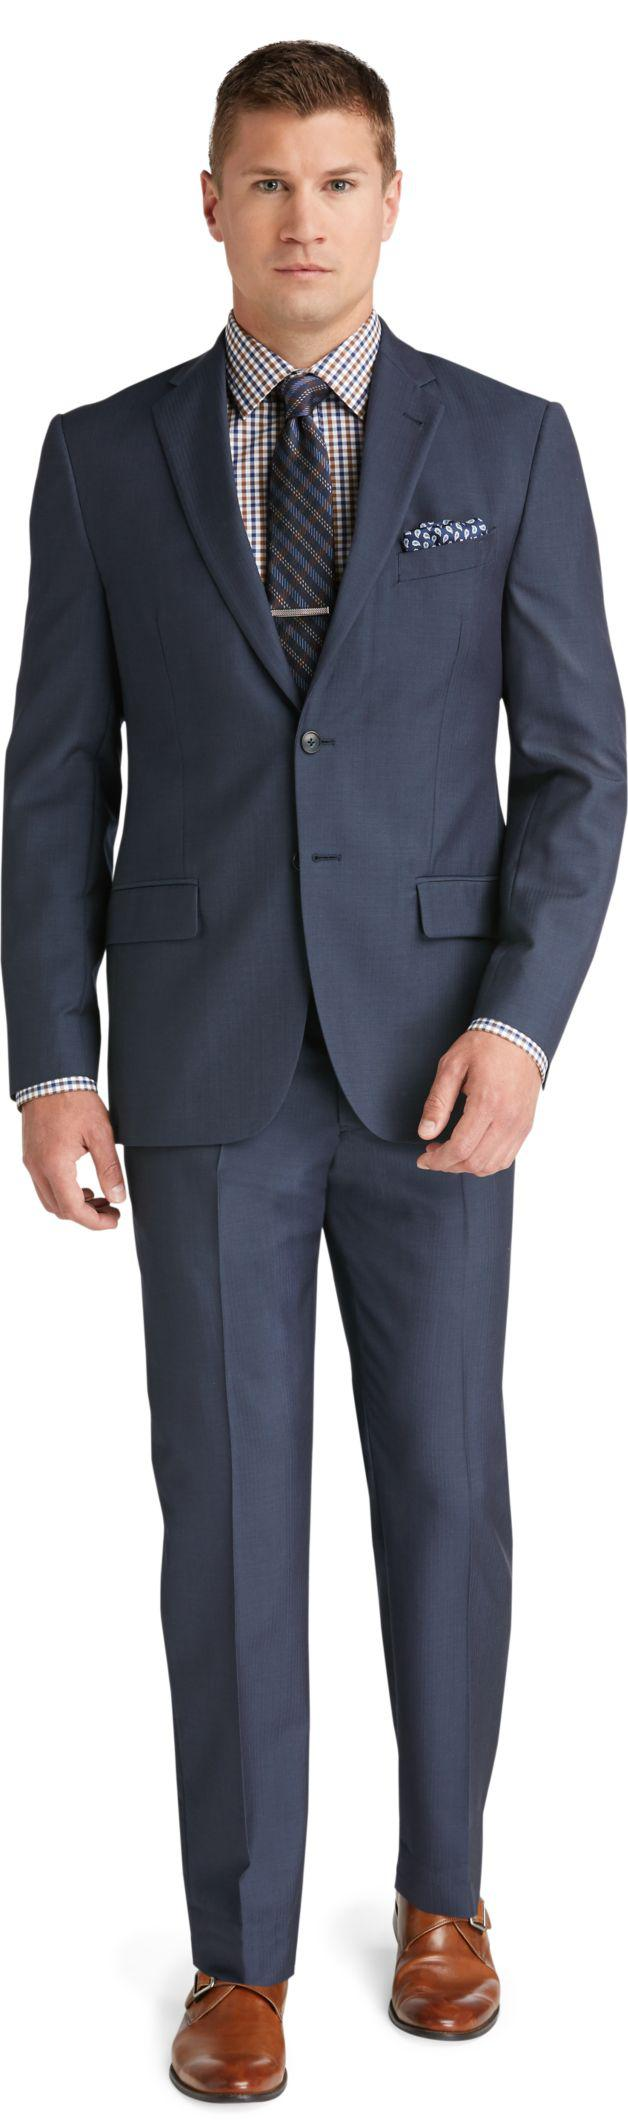 Lyst jos a bank reserve 2 button plain front slim fit for Jos a bank tailored fit vs slim fit shirts